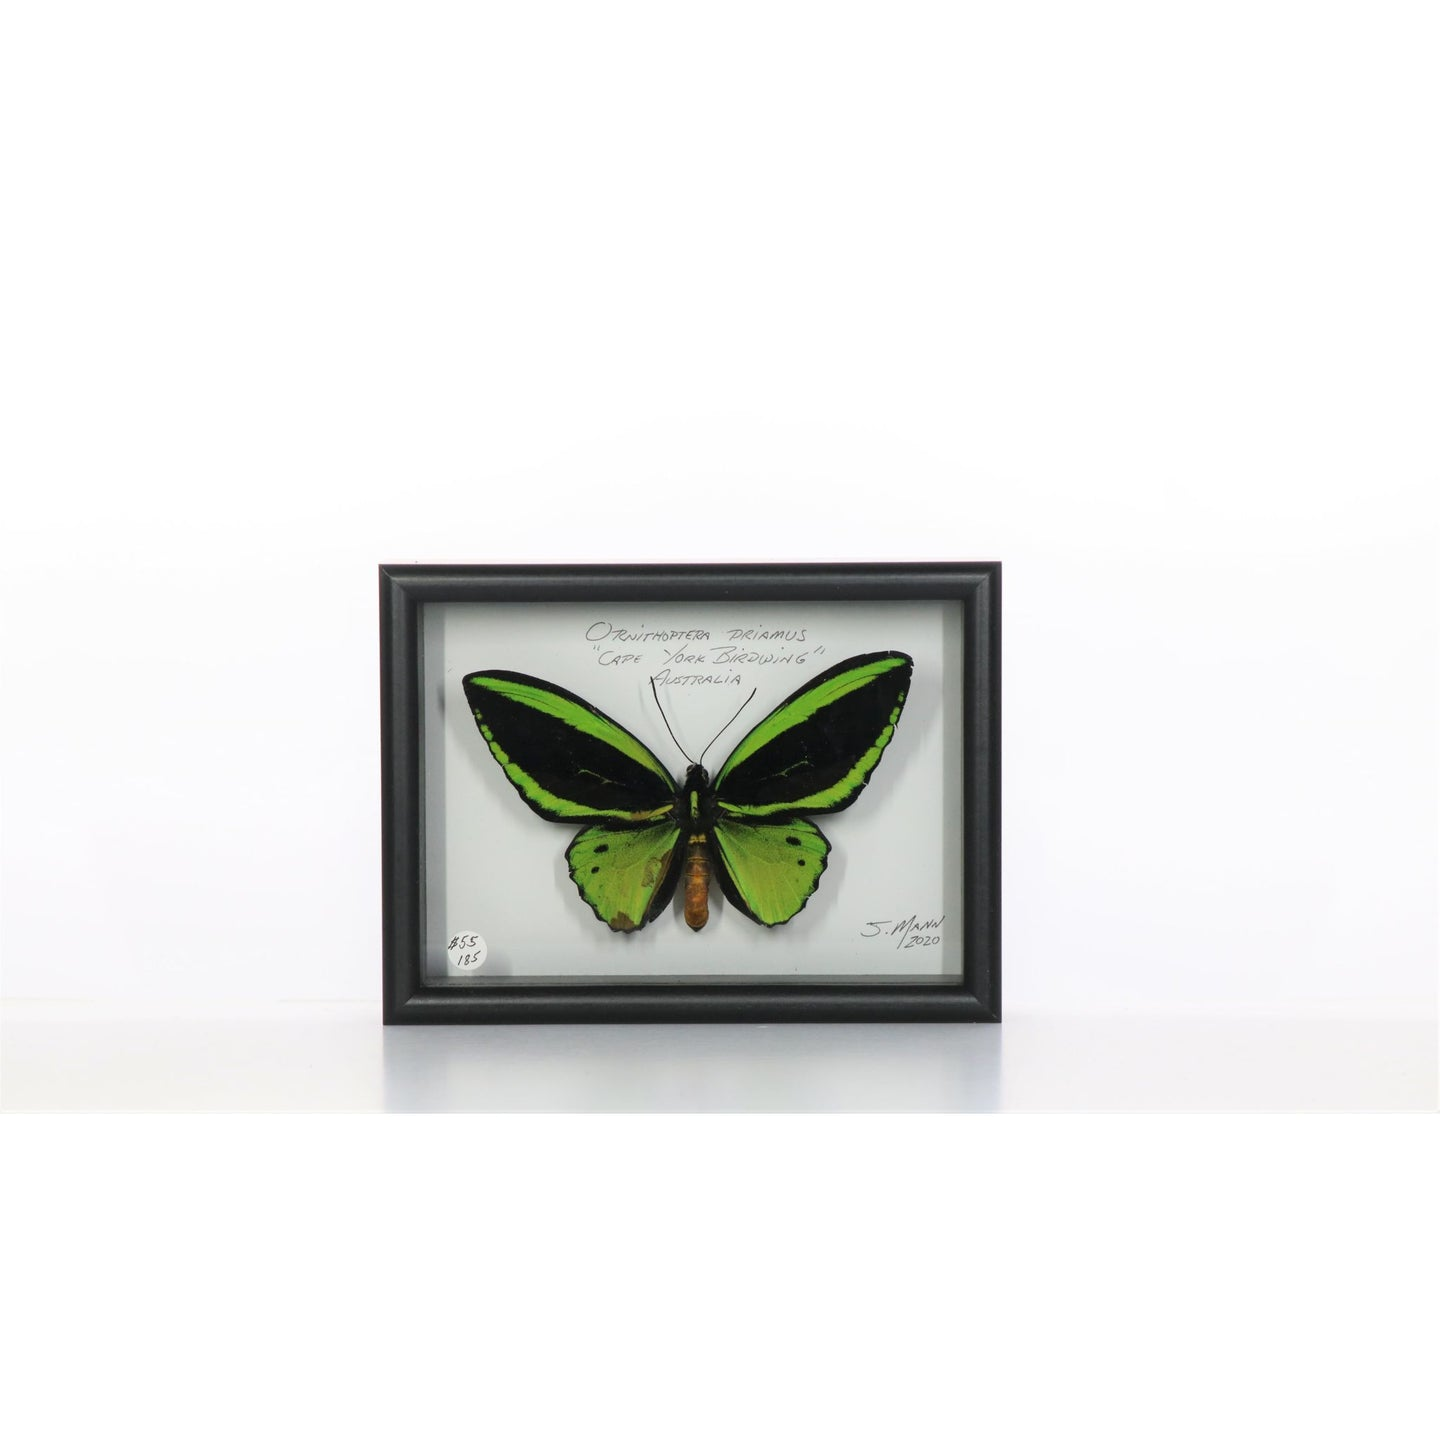 Cape York Birdwings 5x7 Black #185 Framed Art - Insecta Etcetera